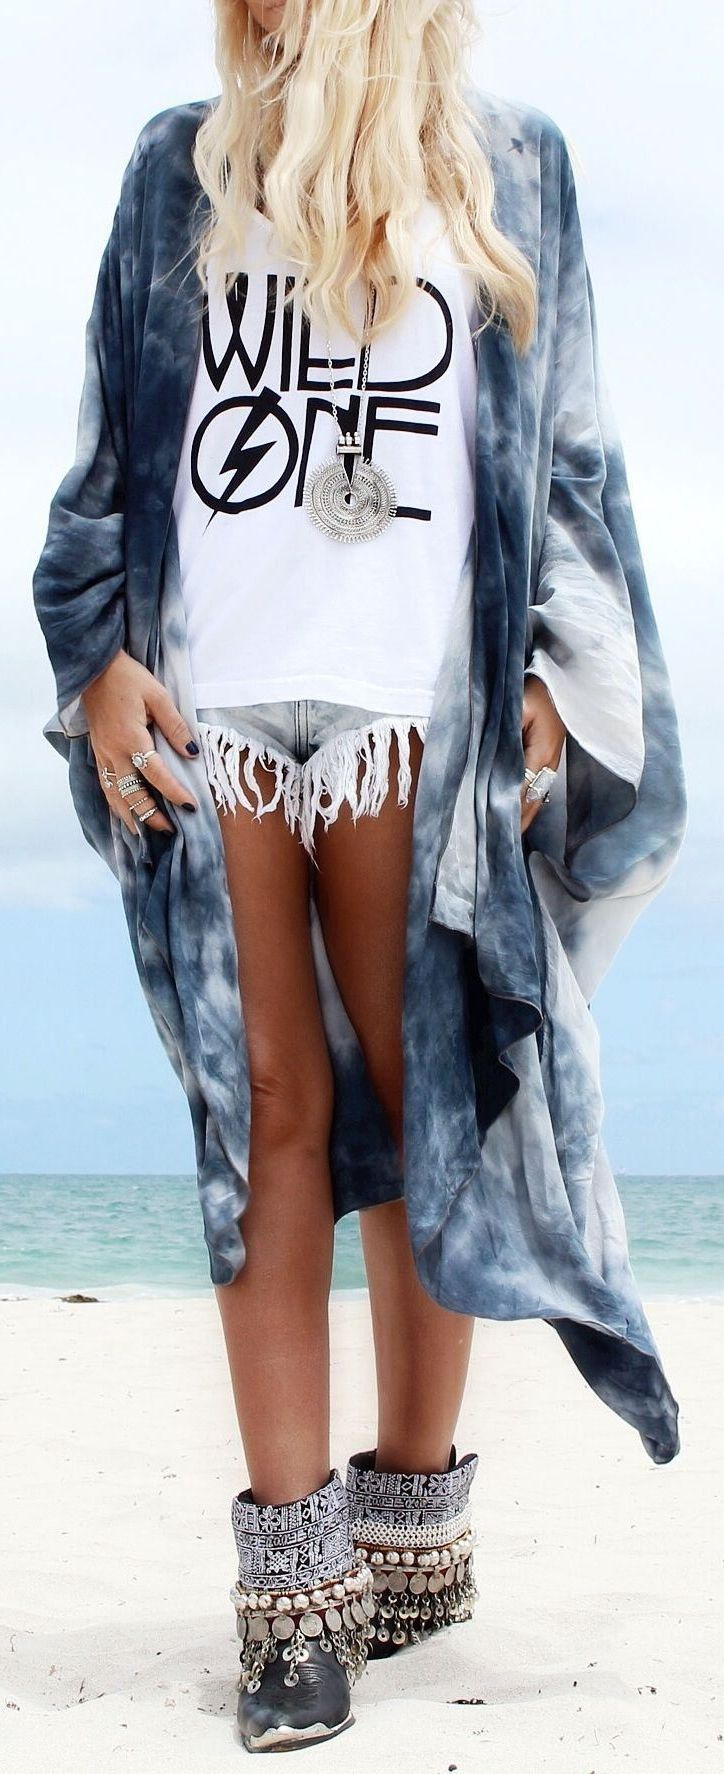 modern hippie fringe cut off jean shorts with tie dyed long kimono & short boho boots. For the BEST Bohemian fashion trends of 2015 FOLLOW > https://www.pinterest.com/happygolicky/the-best-boho-chic-fashion-bohemian-jewelry-gypsy-/ < now